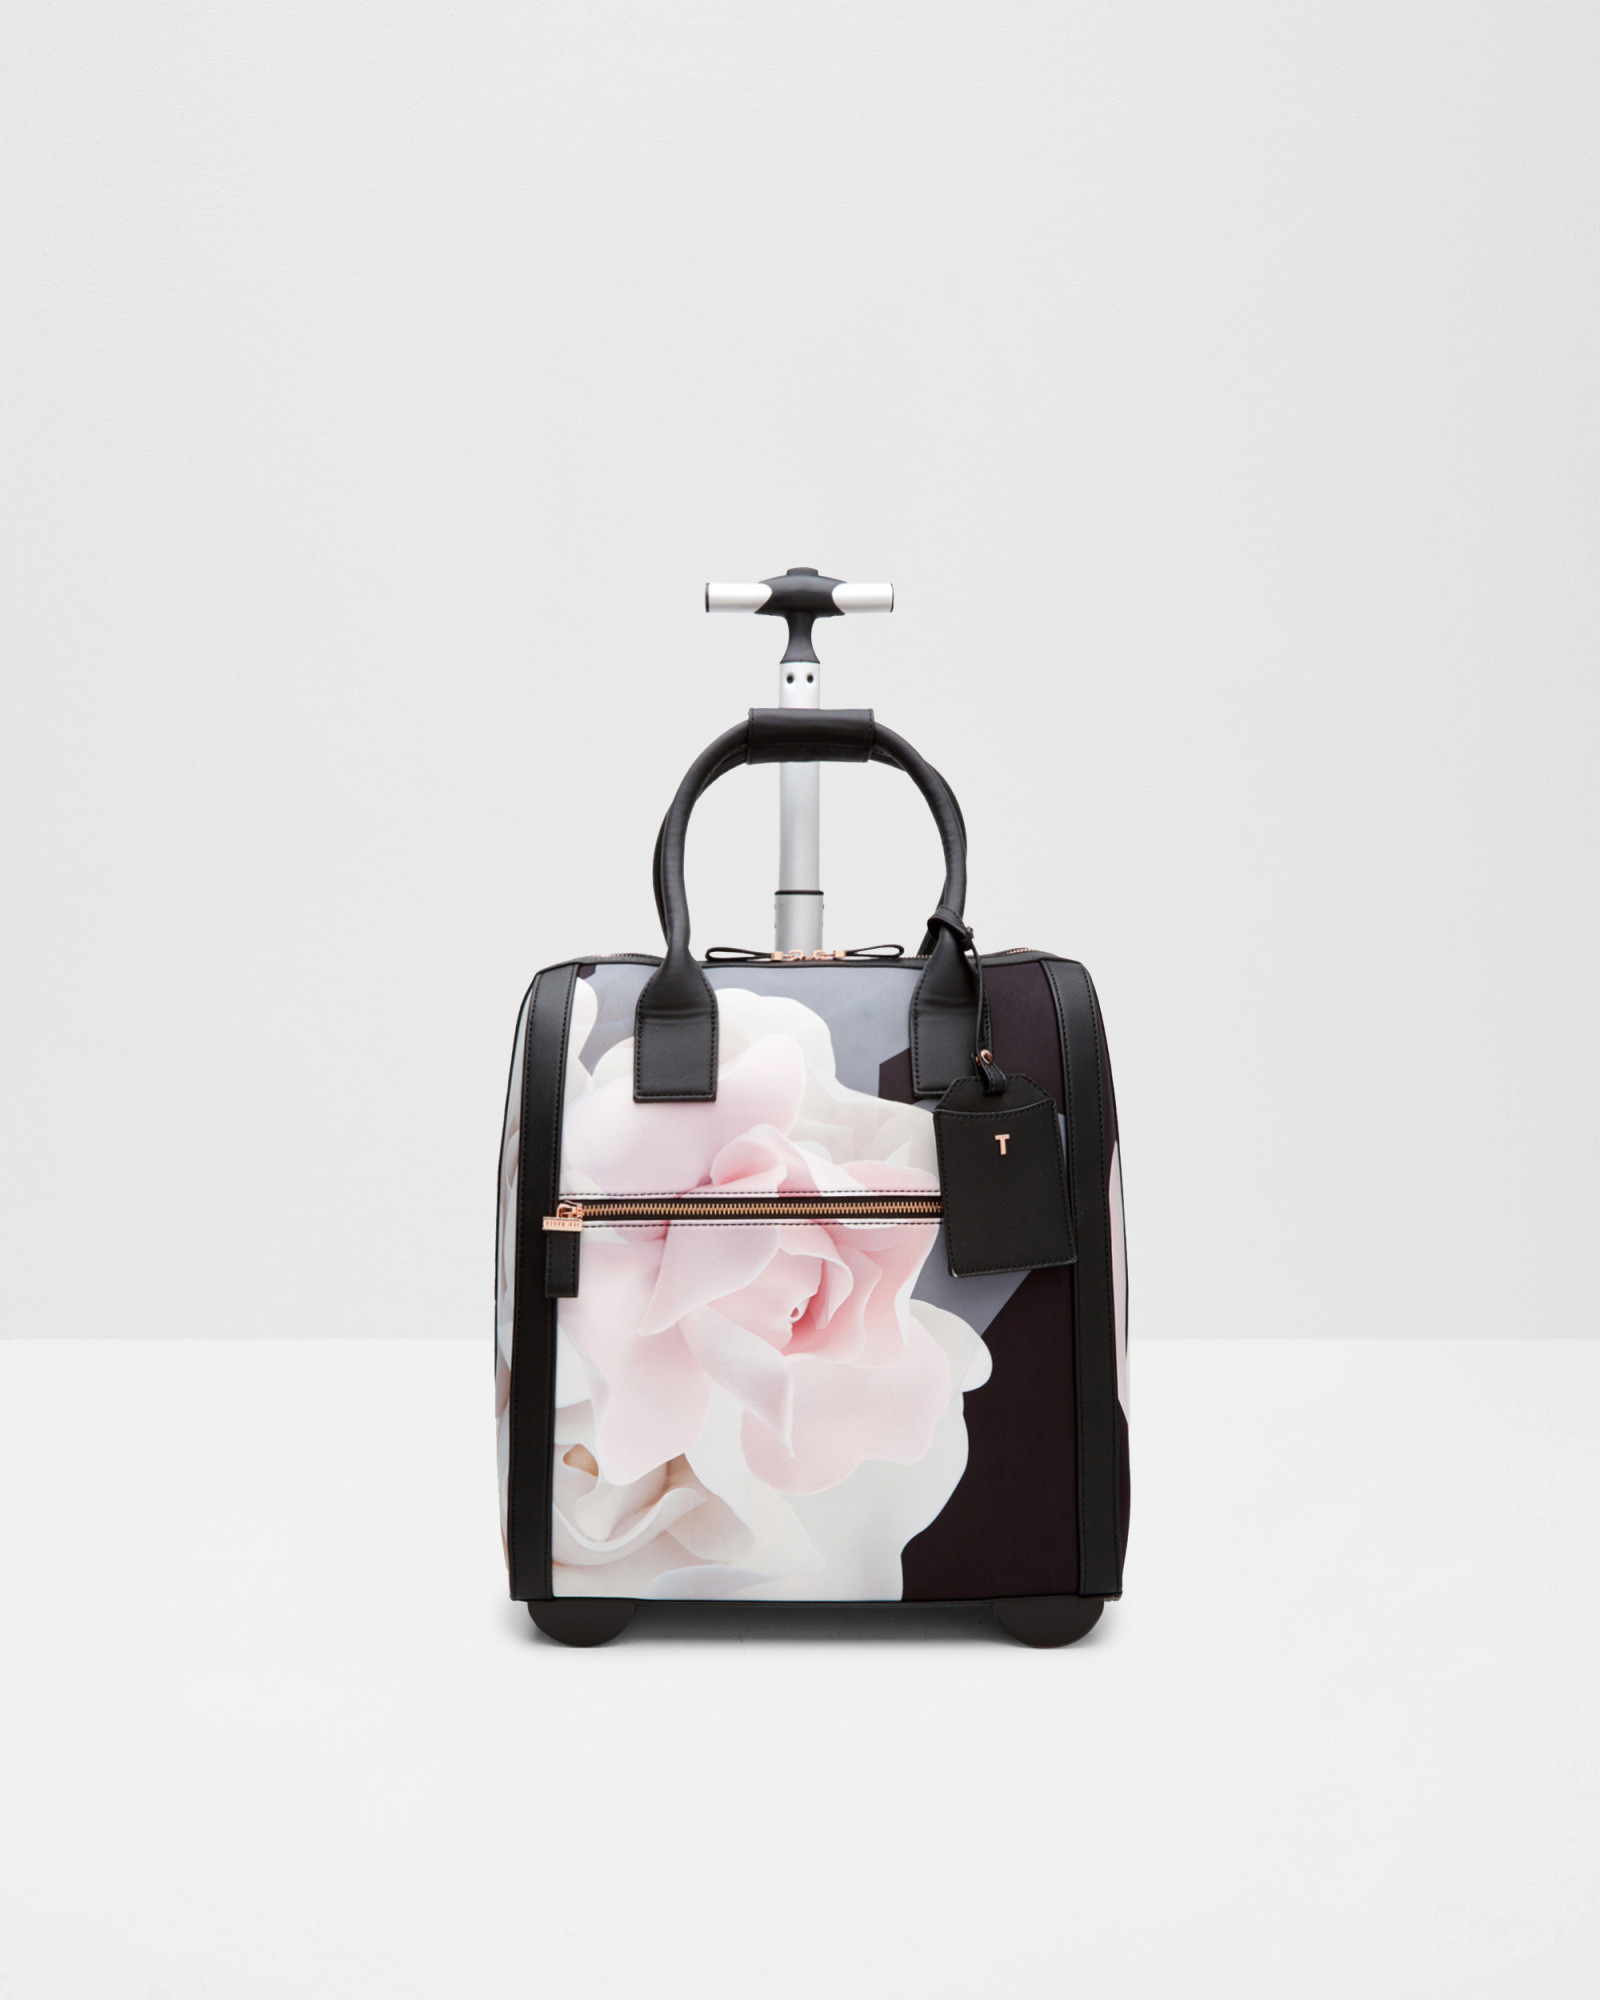 20c7088e4 Lyst - Ted Baker Porcelain Rose Travel Bag in Black